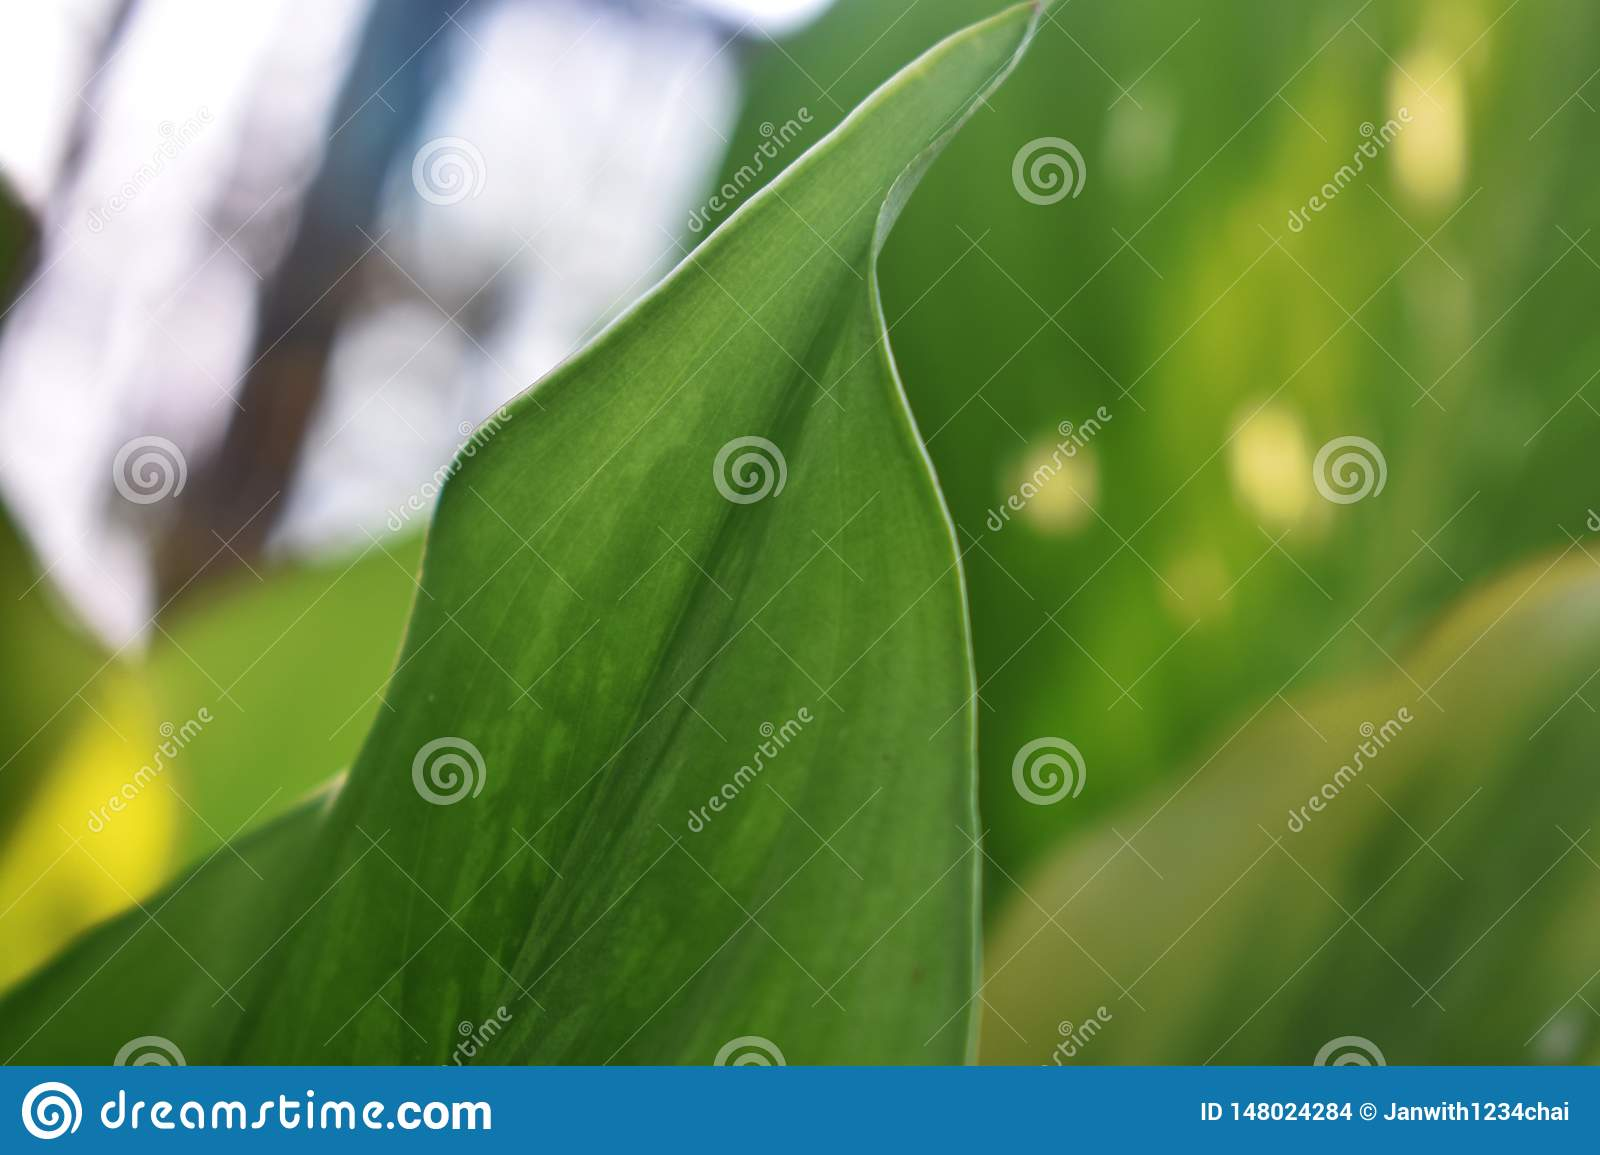 Characteristics of leaves, light green with spots closely